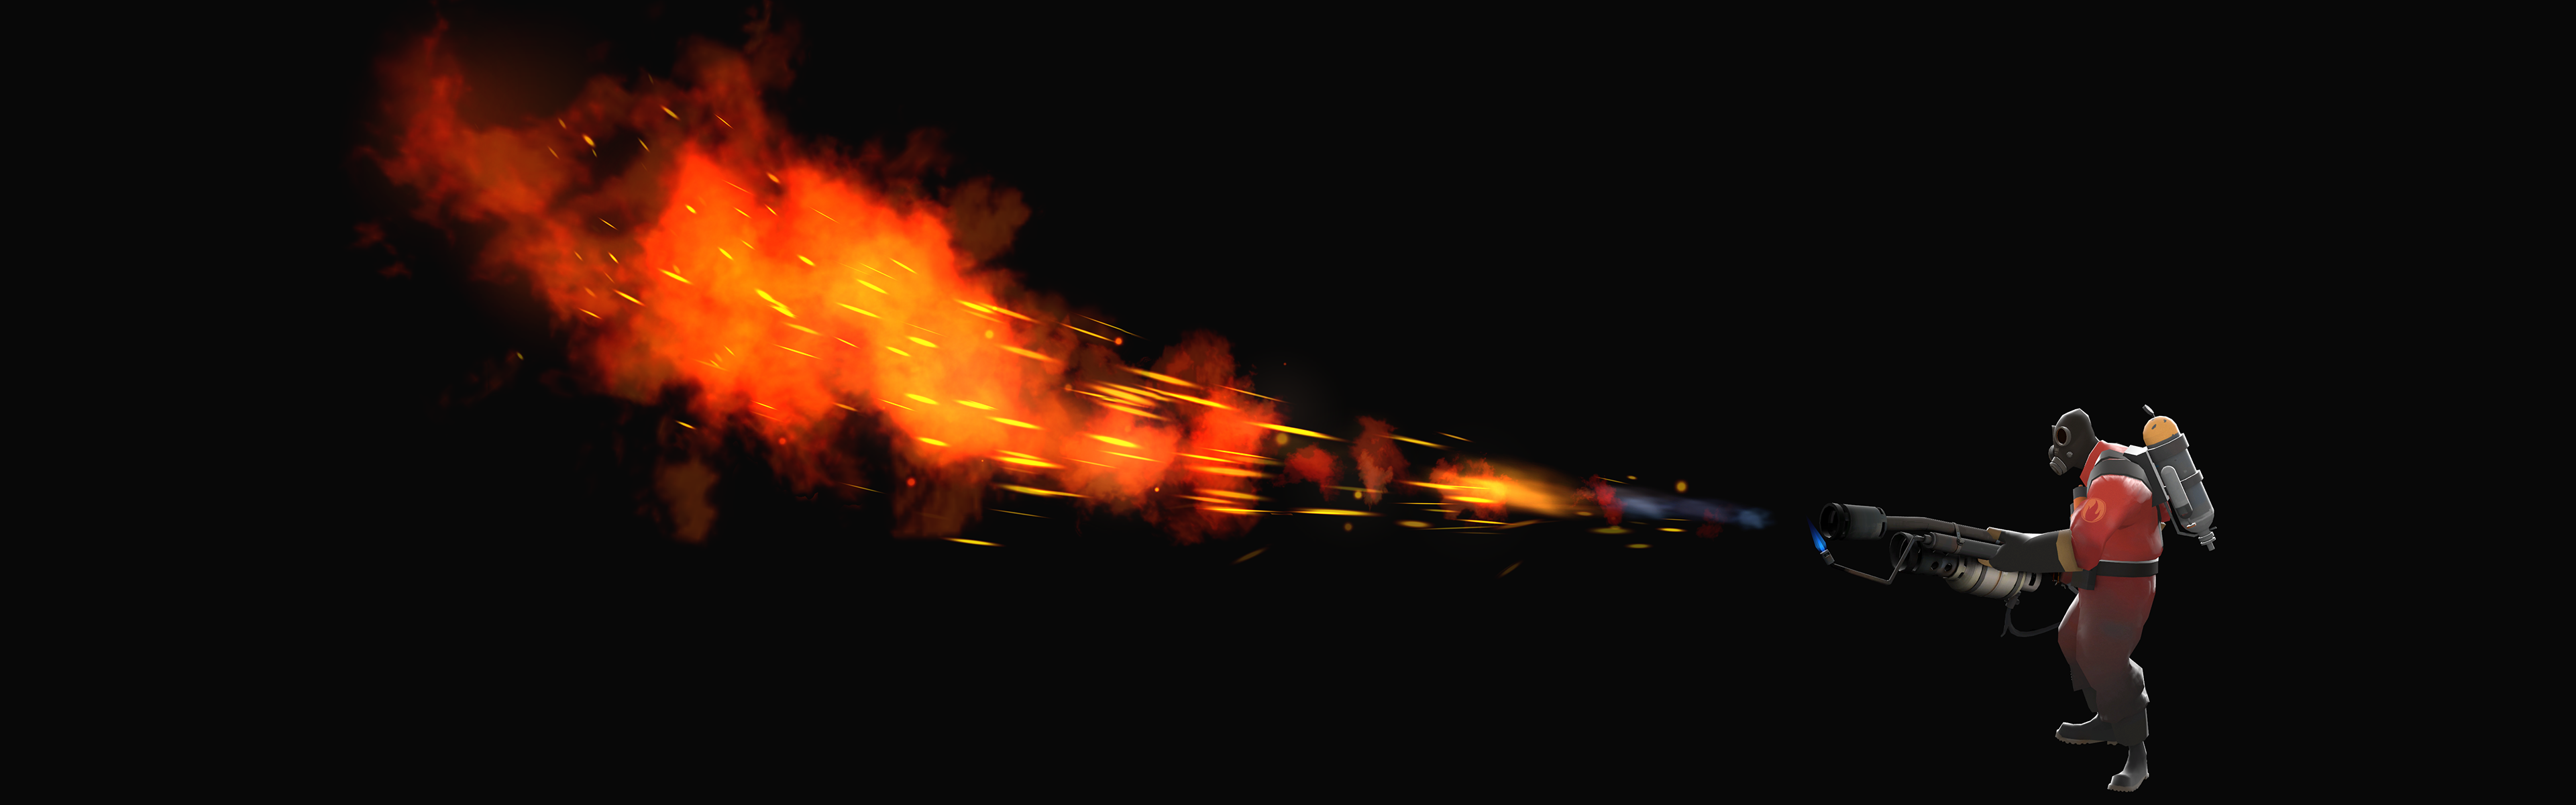 Flamethrower Team Fortress 2 Black Background Pyro Free